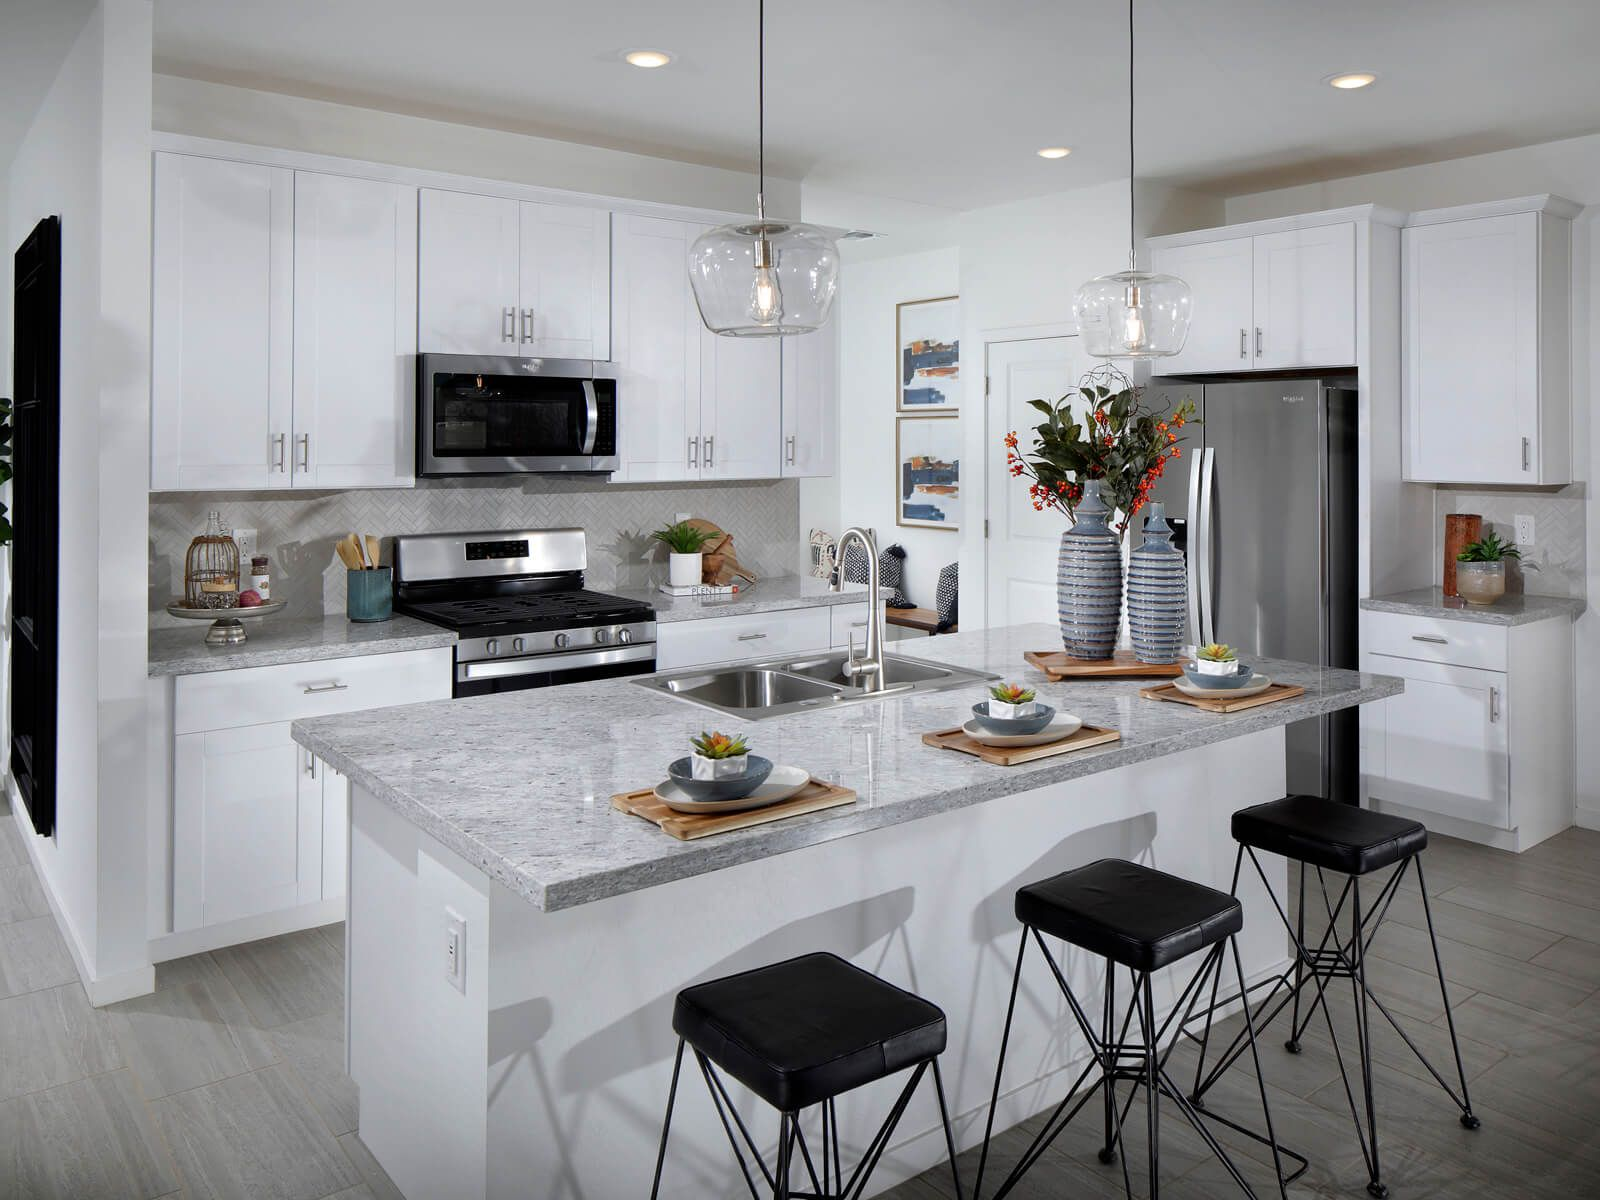 Kitchen featured in the Leslie - 3 Car Garage Included By Meritage Homes in Phoenix-Mesa, AZ